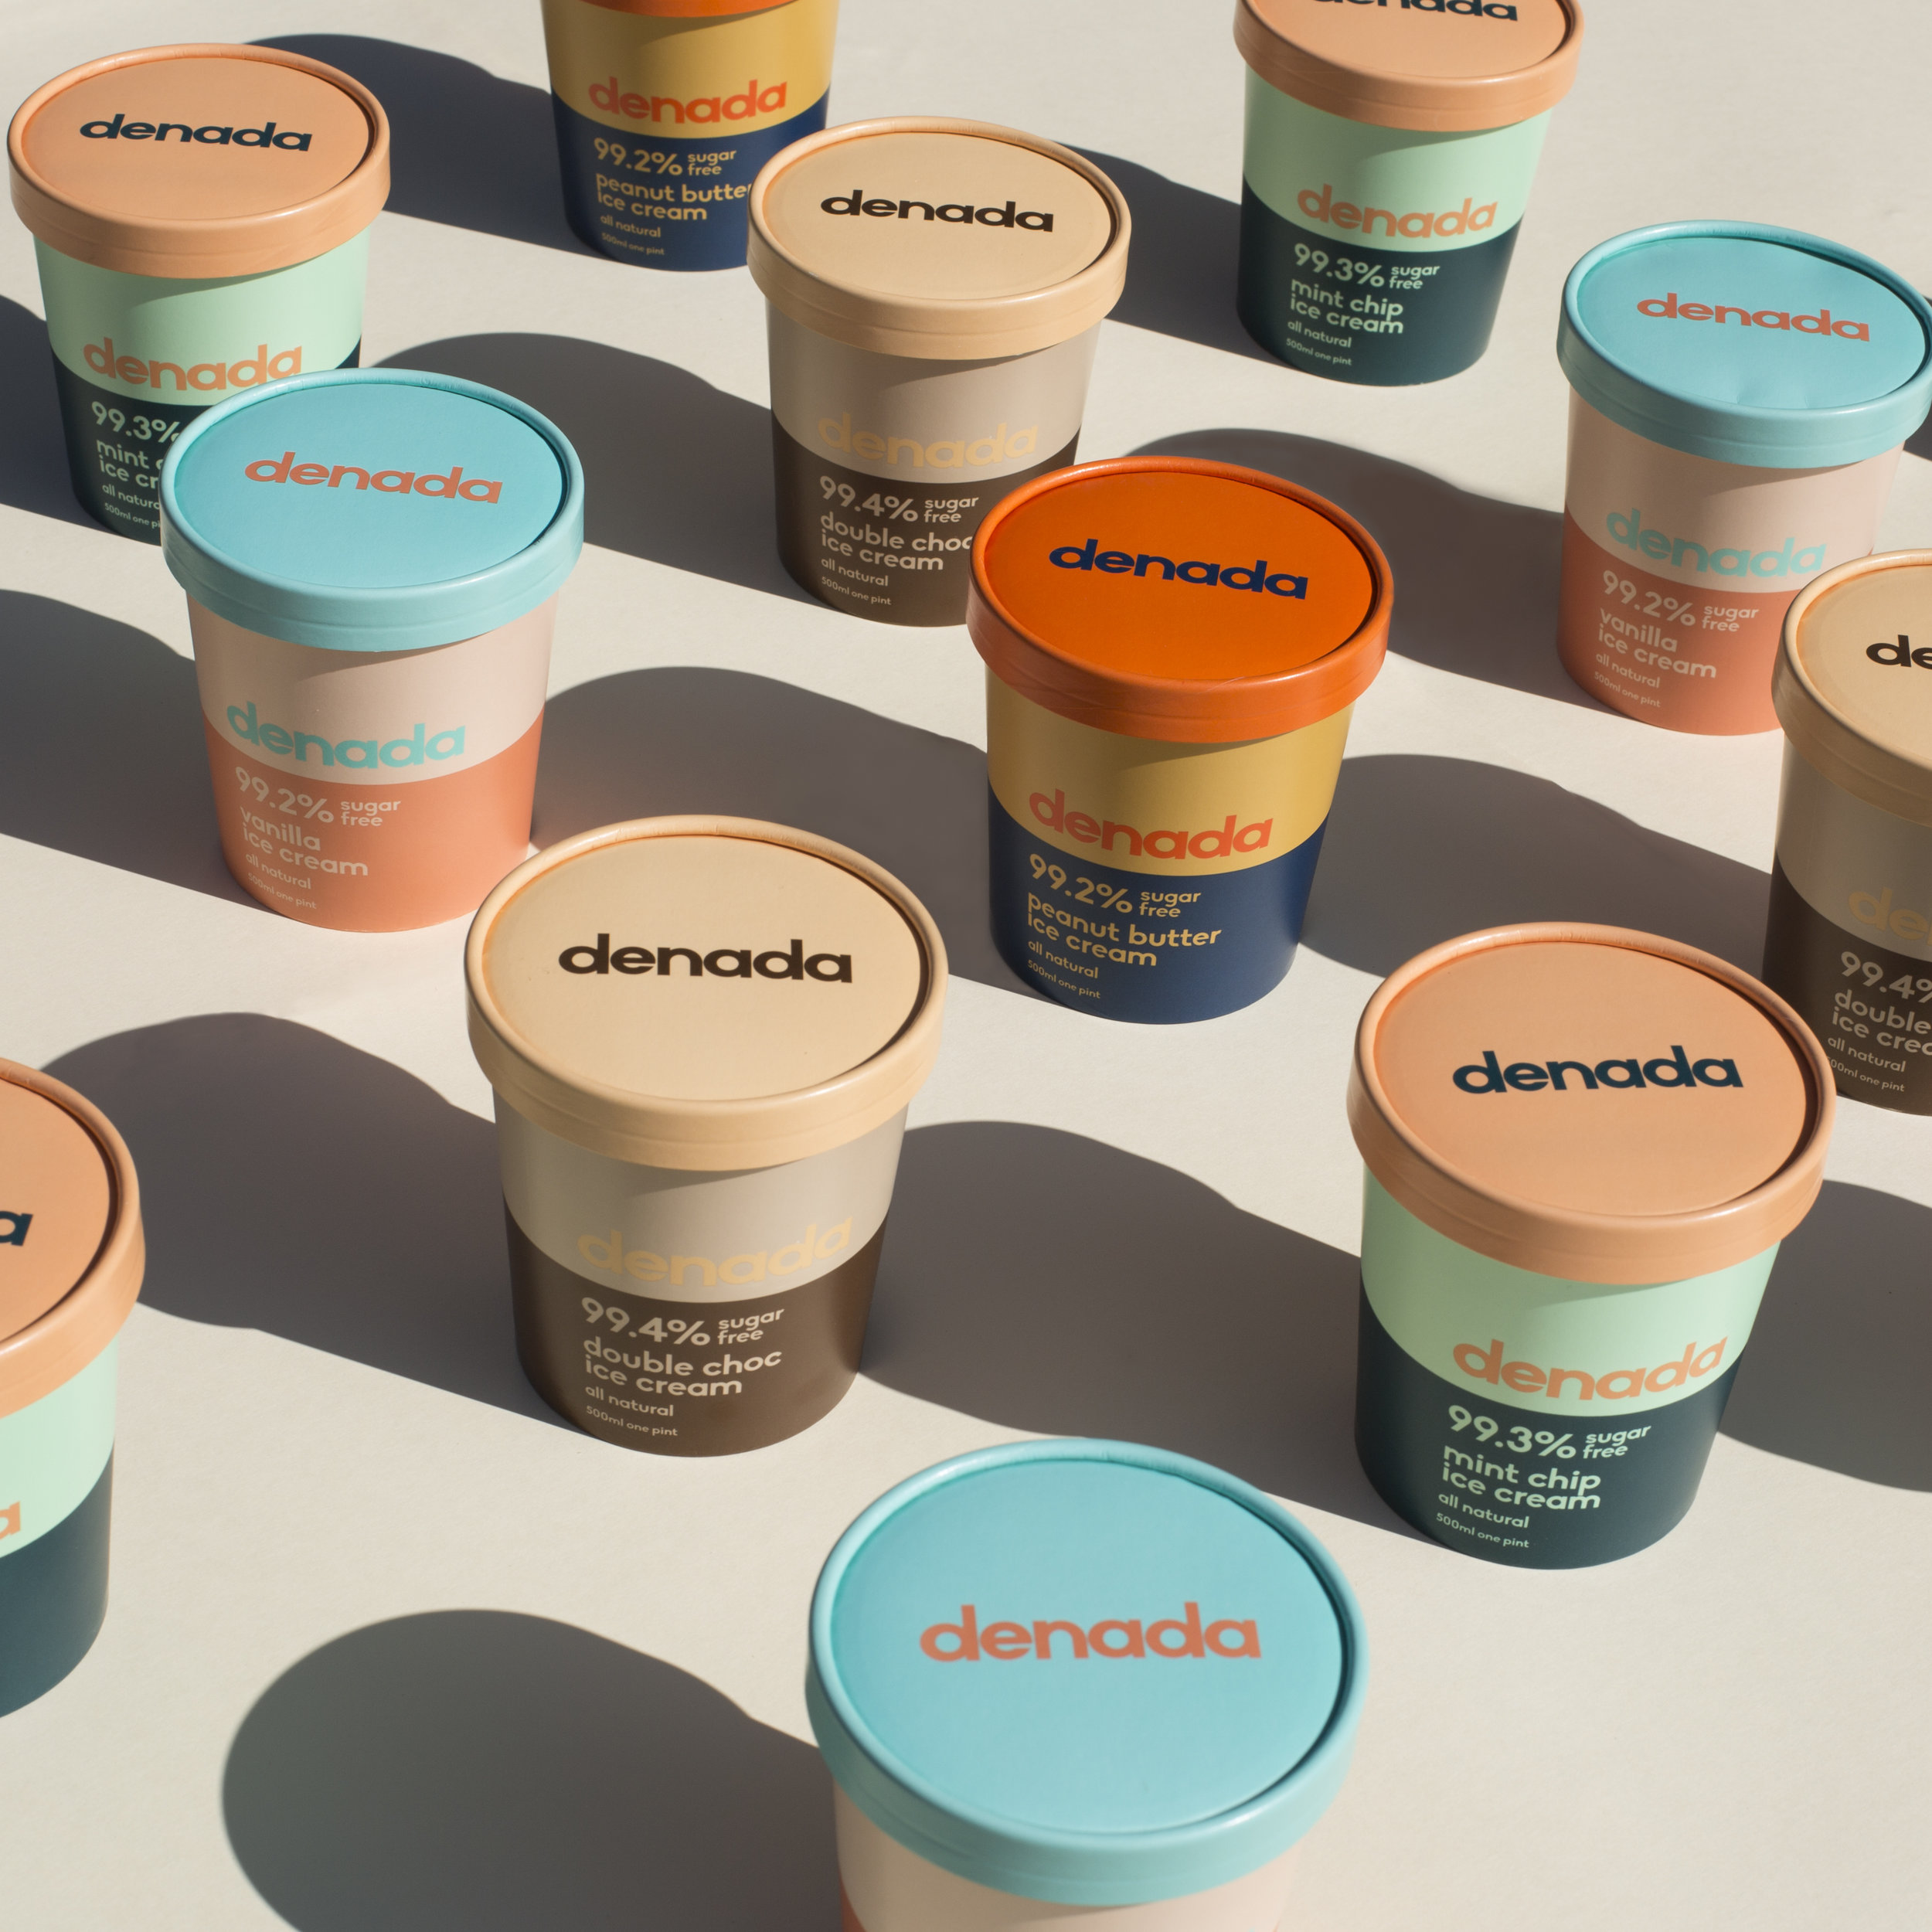 Branding and Packaging for Sugar Free Ice Cream Company